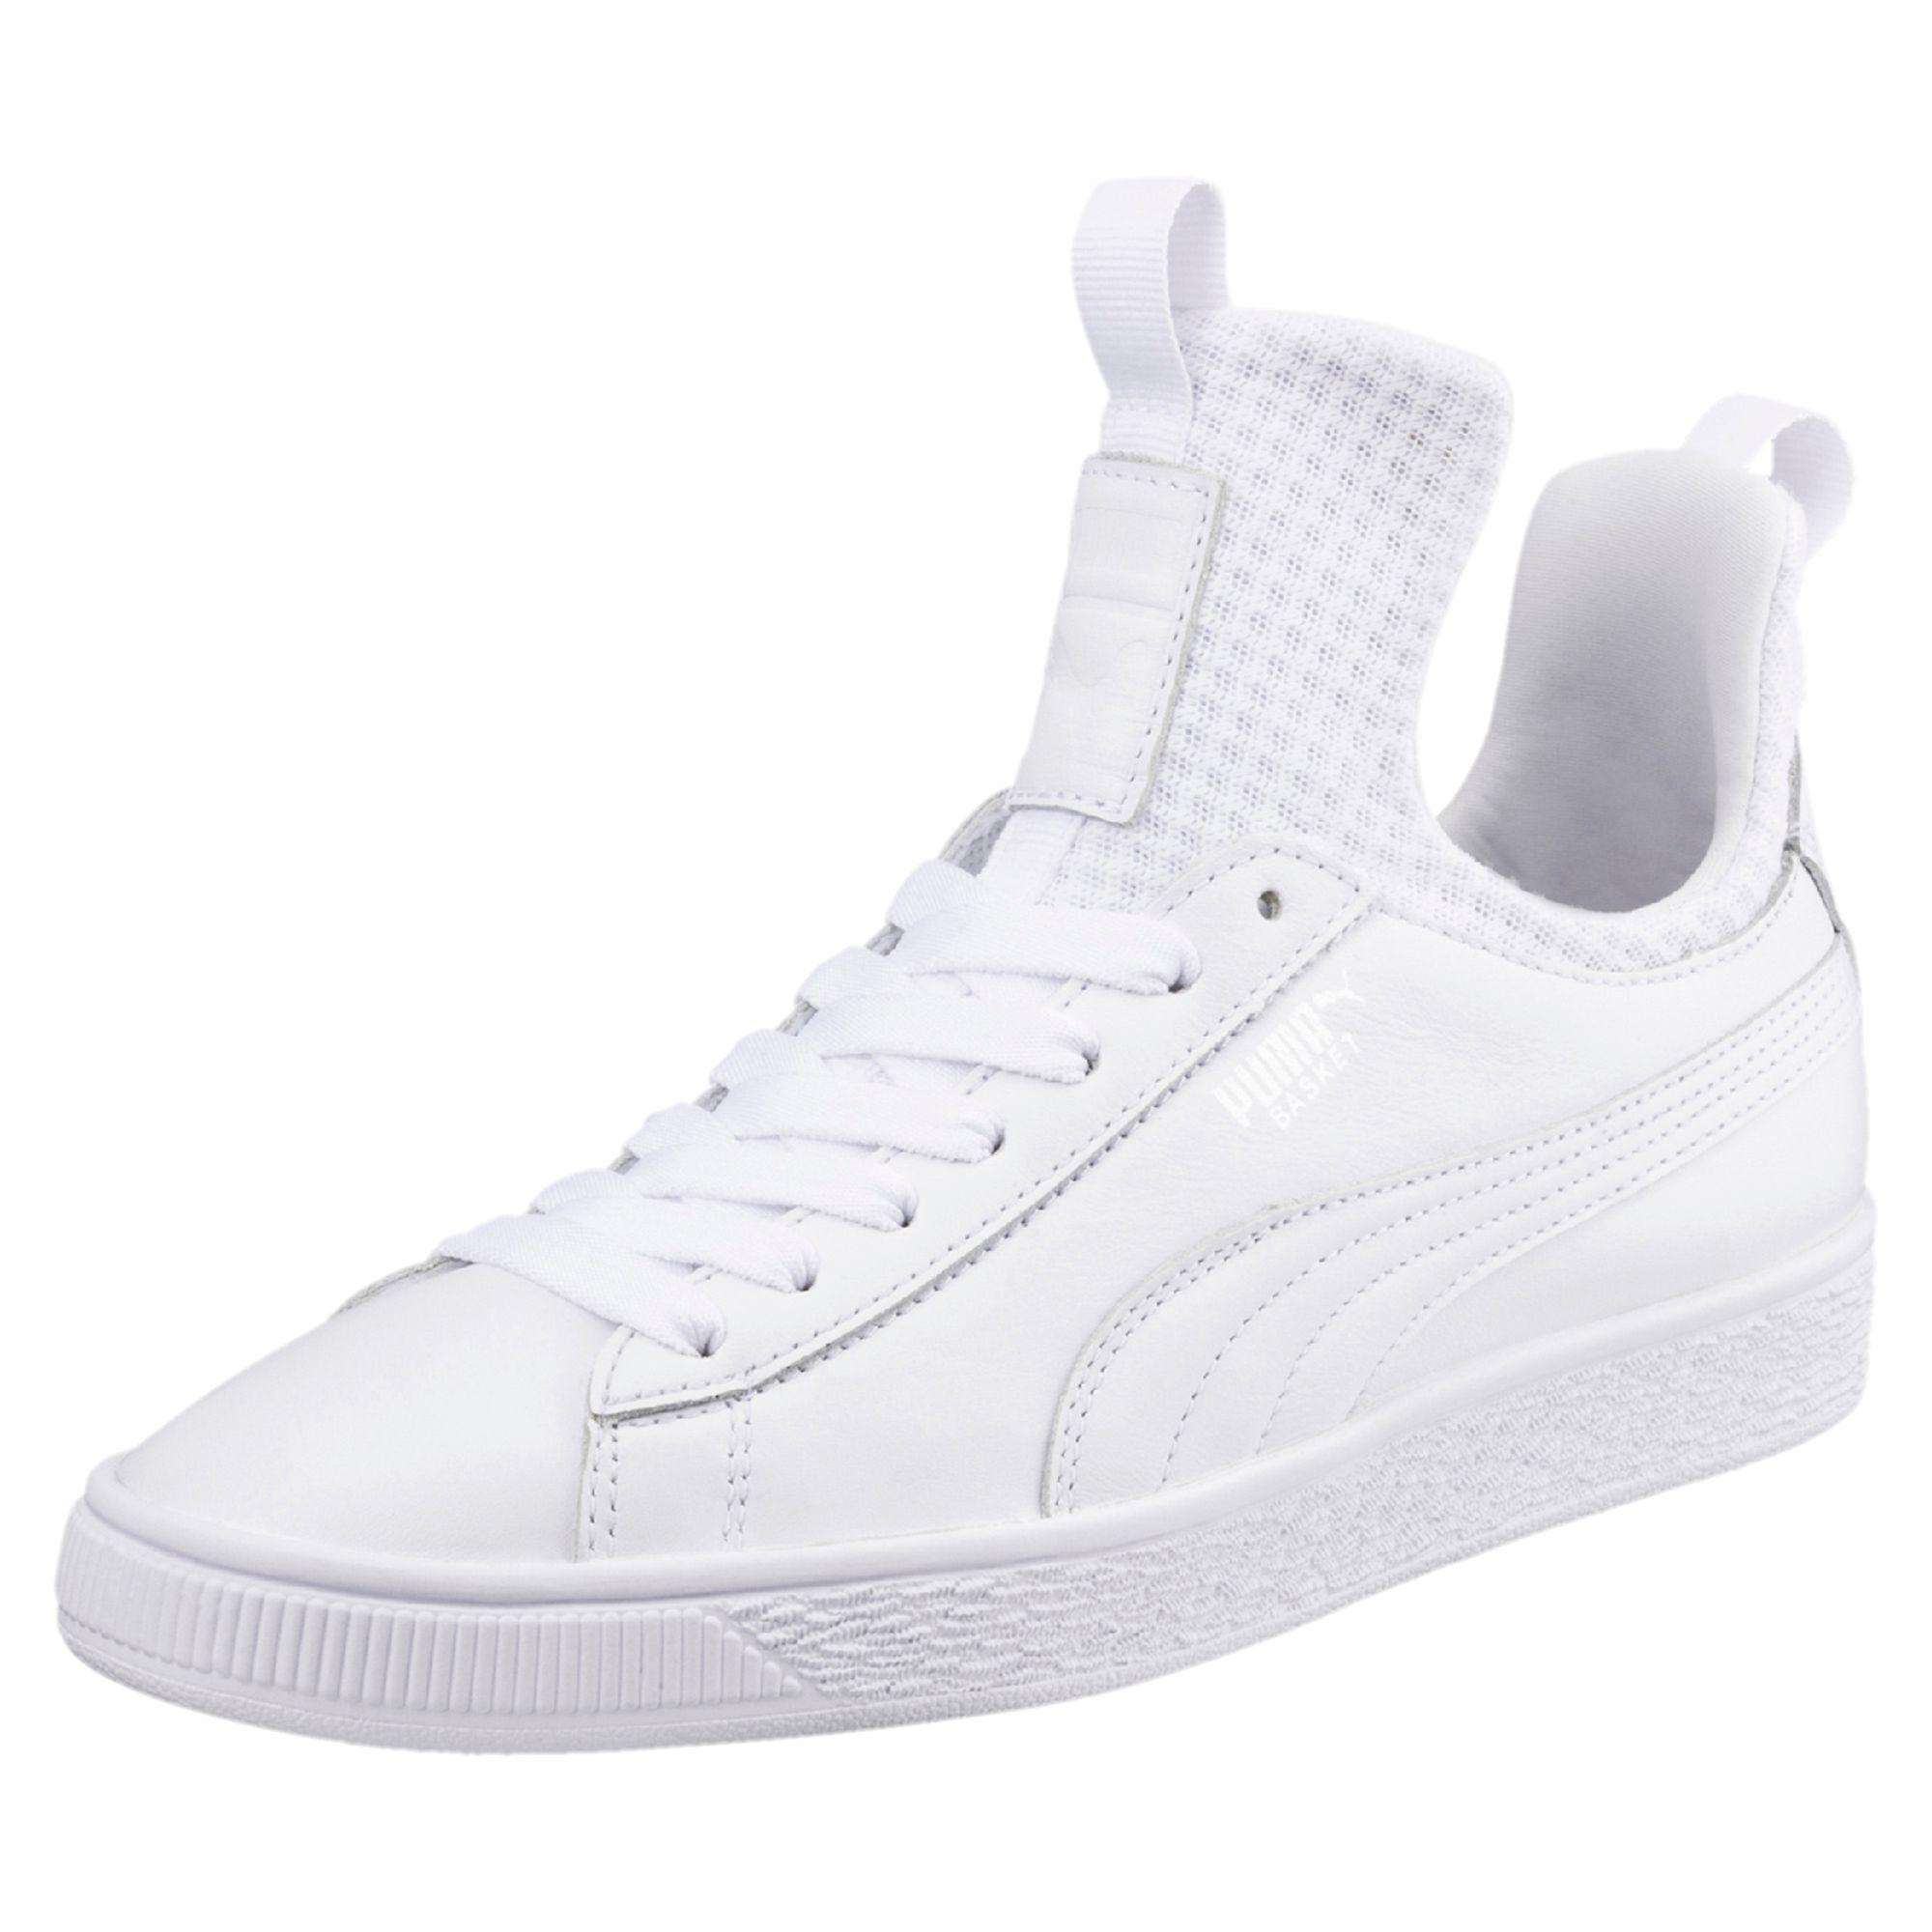 f202ea26f63 Lyst - PUMA Basket Fierce En Pointe Women s Shoes in White